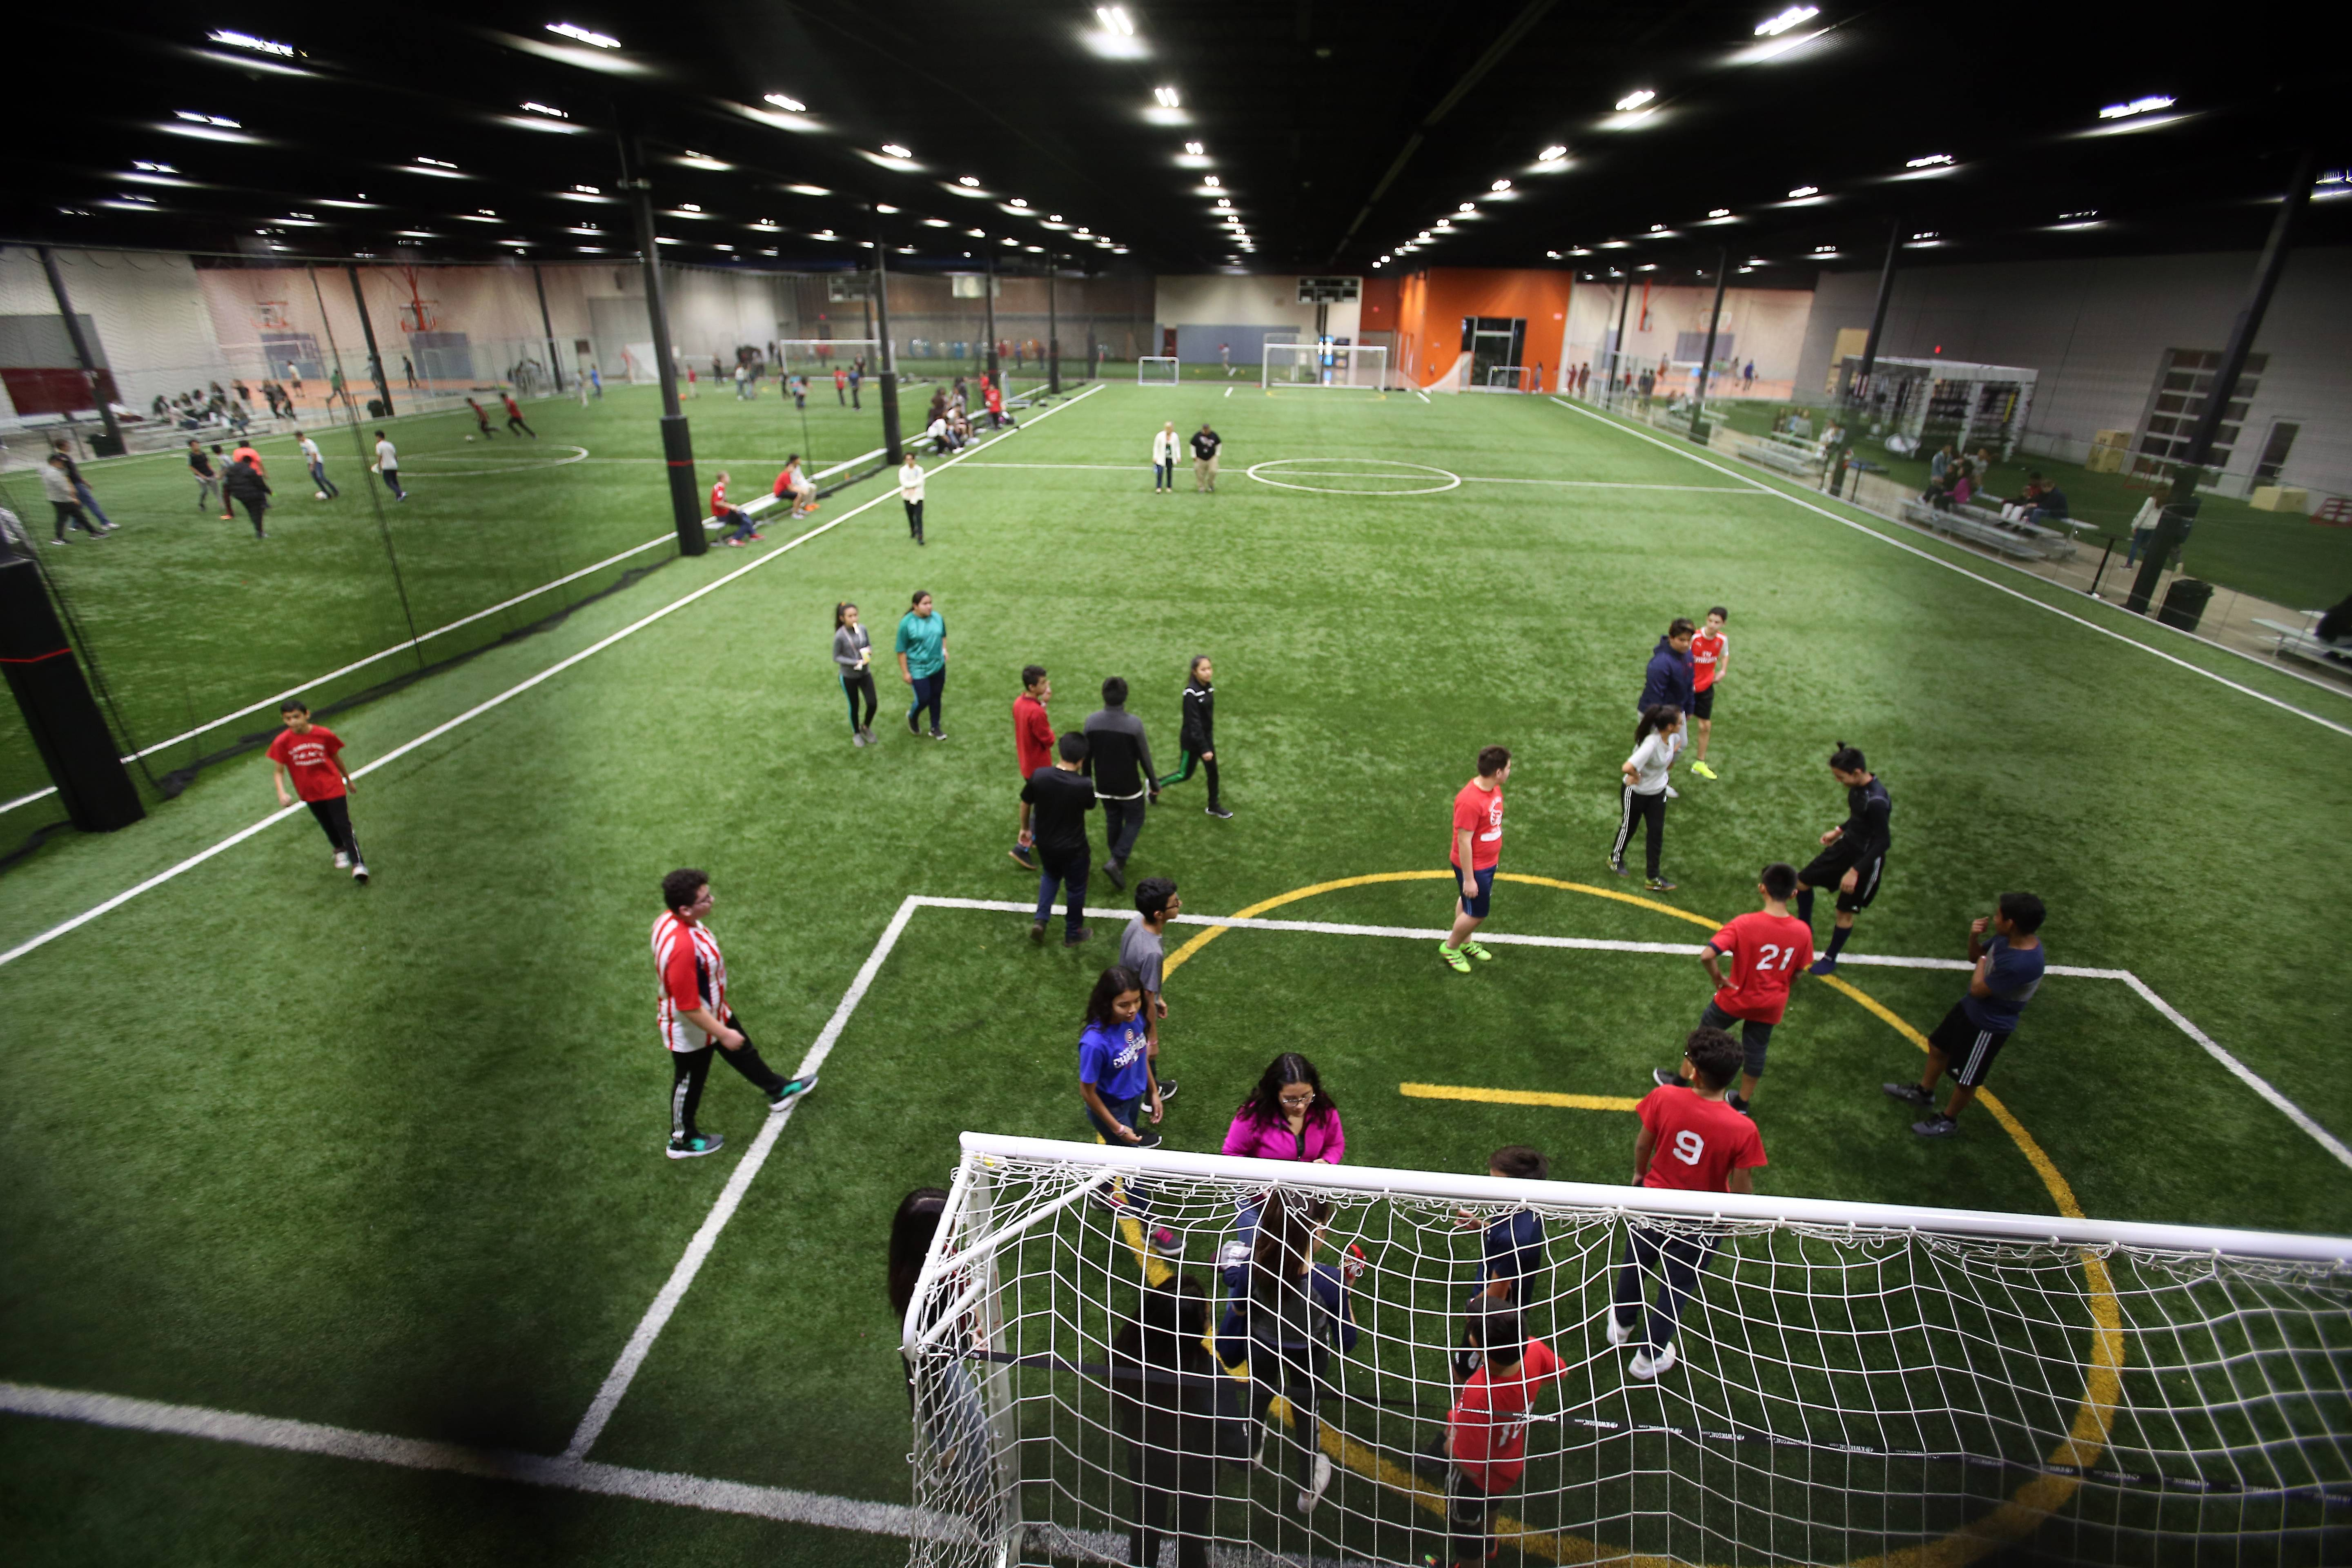 More than 300 students from Ellis Middle School in Elgin took a field trip Wednesday to LifeZone 360, the new sports complex in West Dundee.